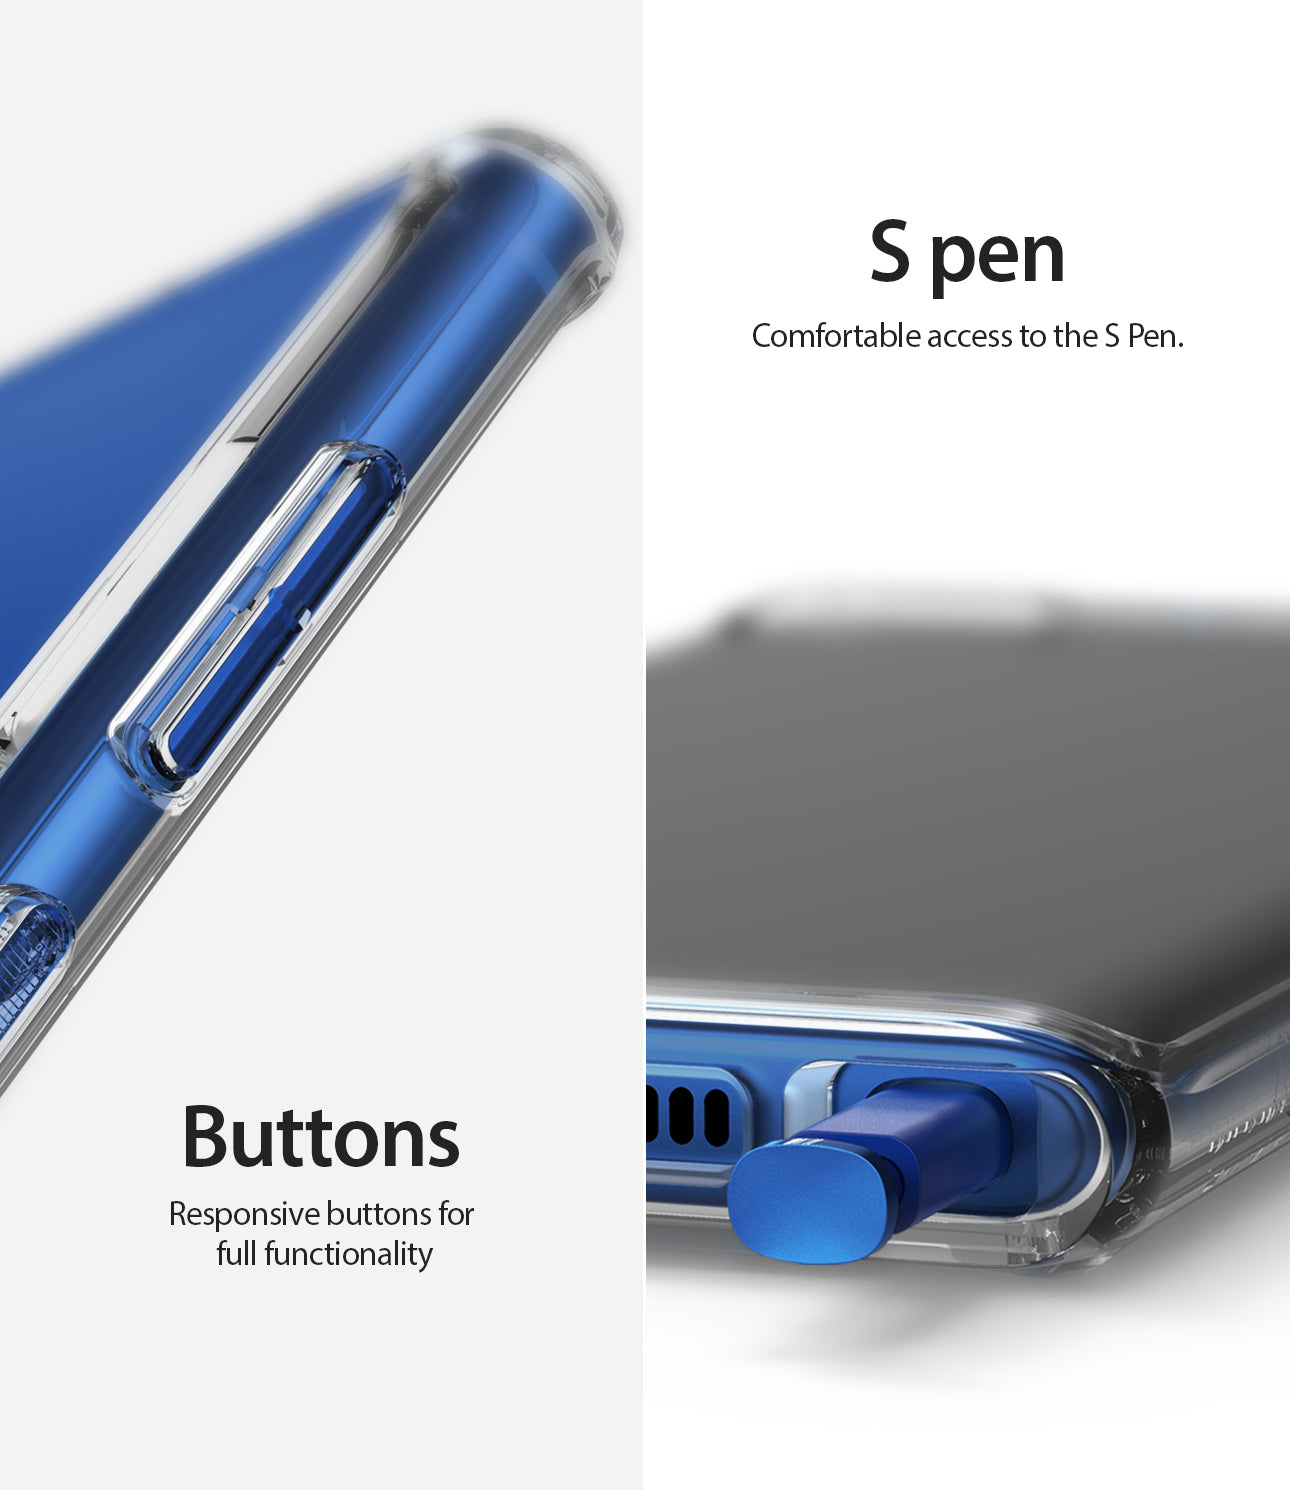 comfortable access to s pen with precise button cutouts